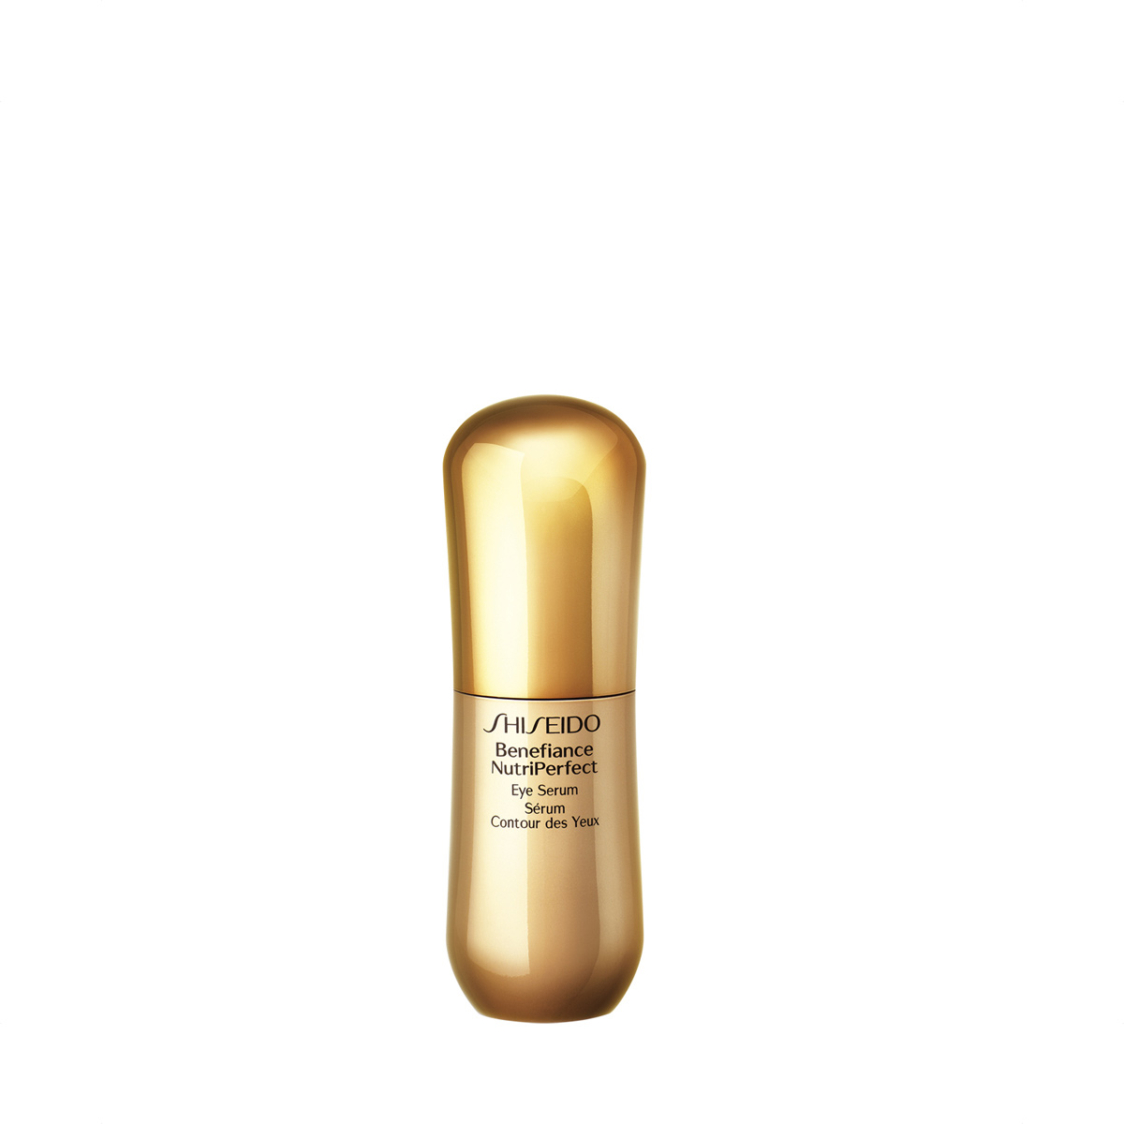 Benefiance NutriPerfect Eye Serum 15ml